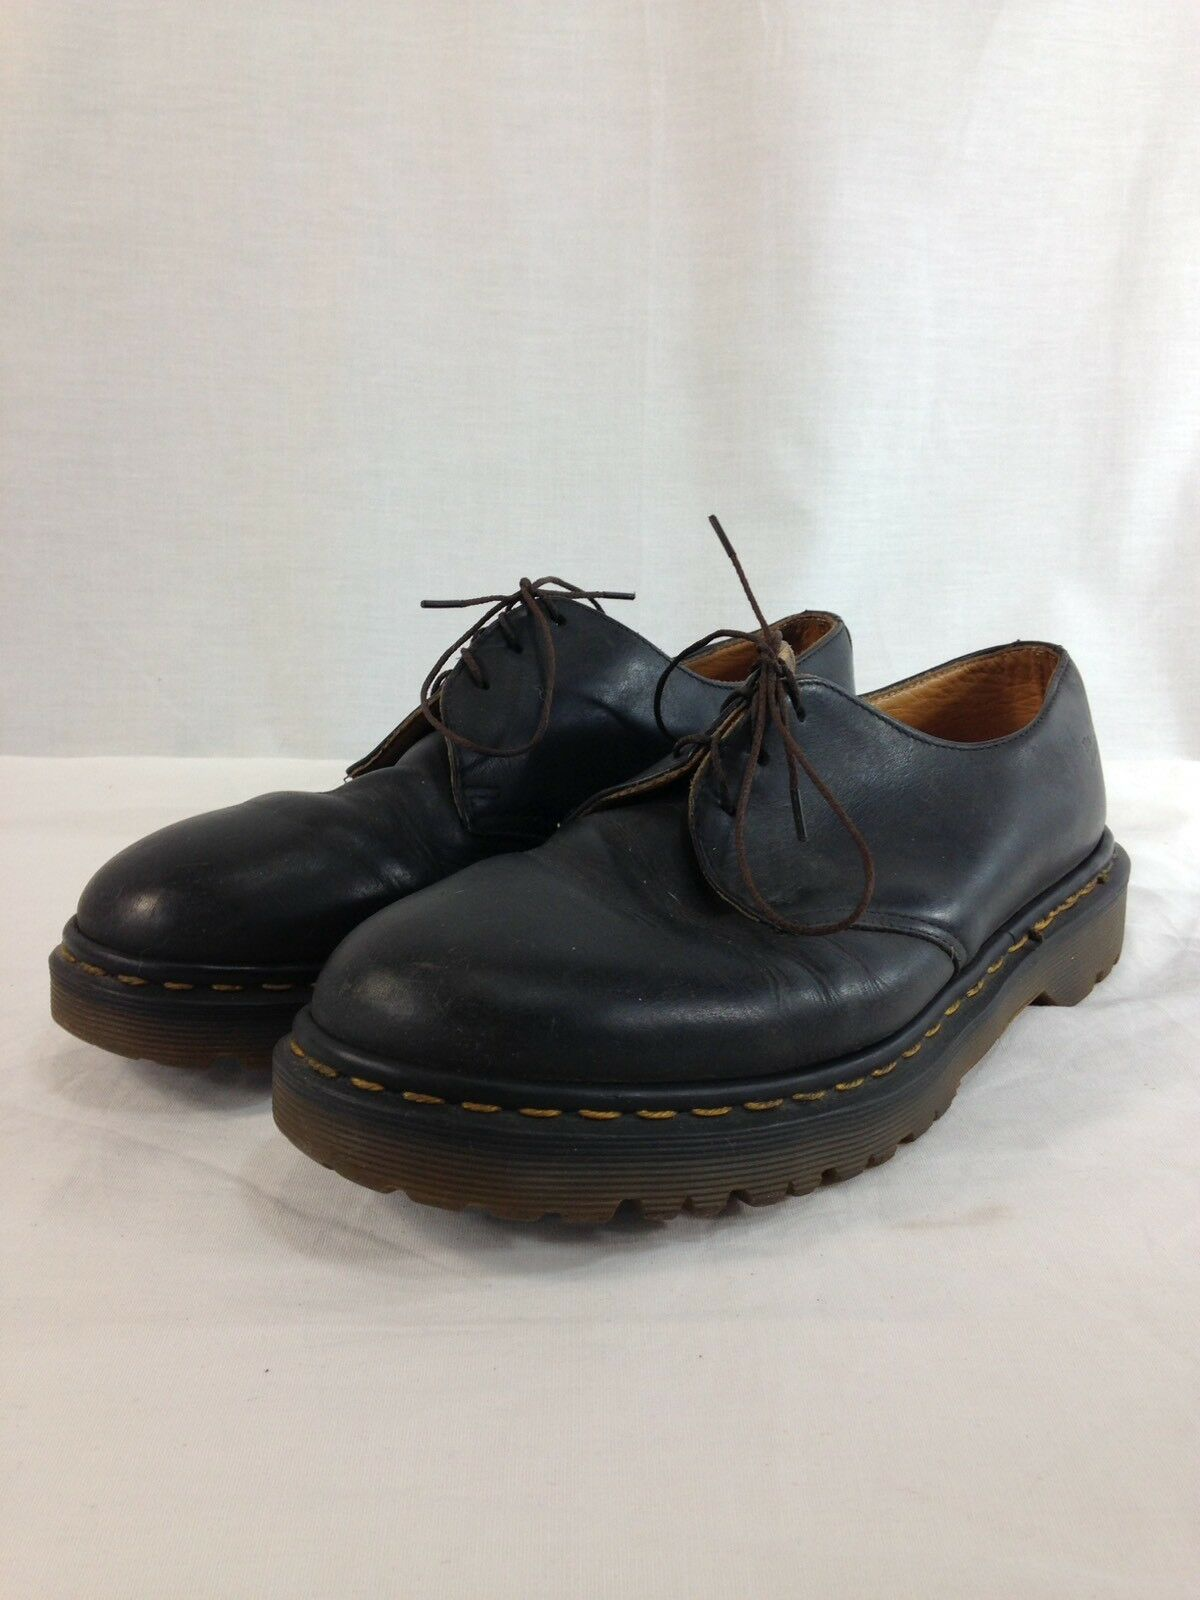 Dr. Martens The Original shoes Mens 8 Black Leather Air Cushion Sole England